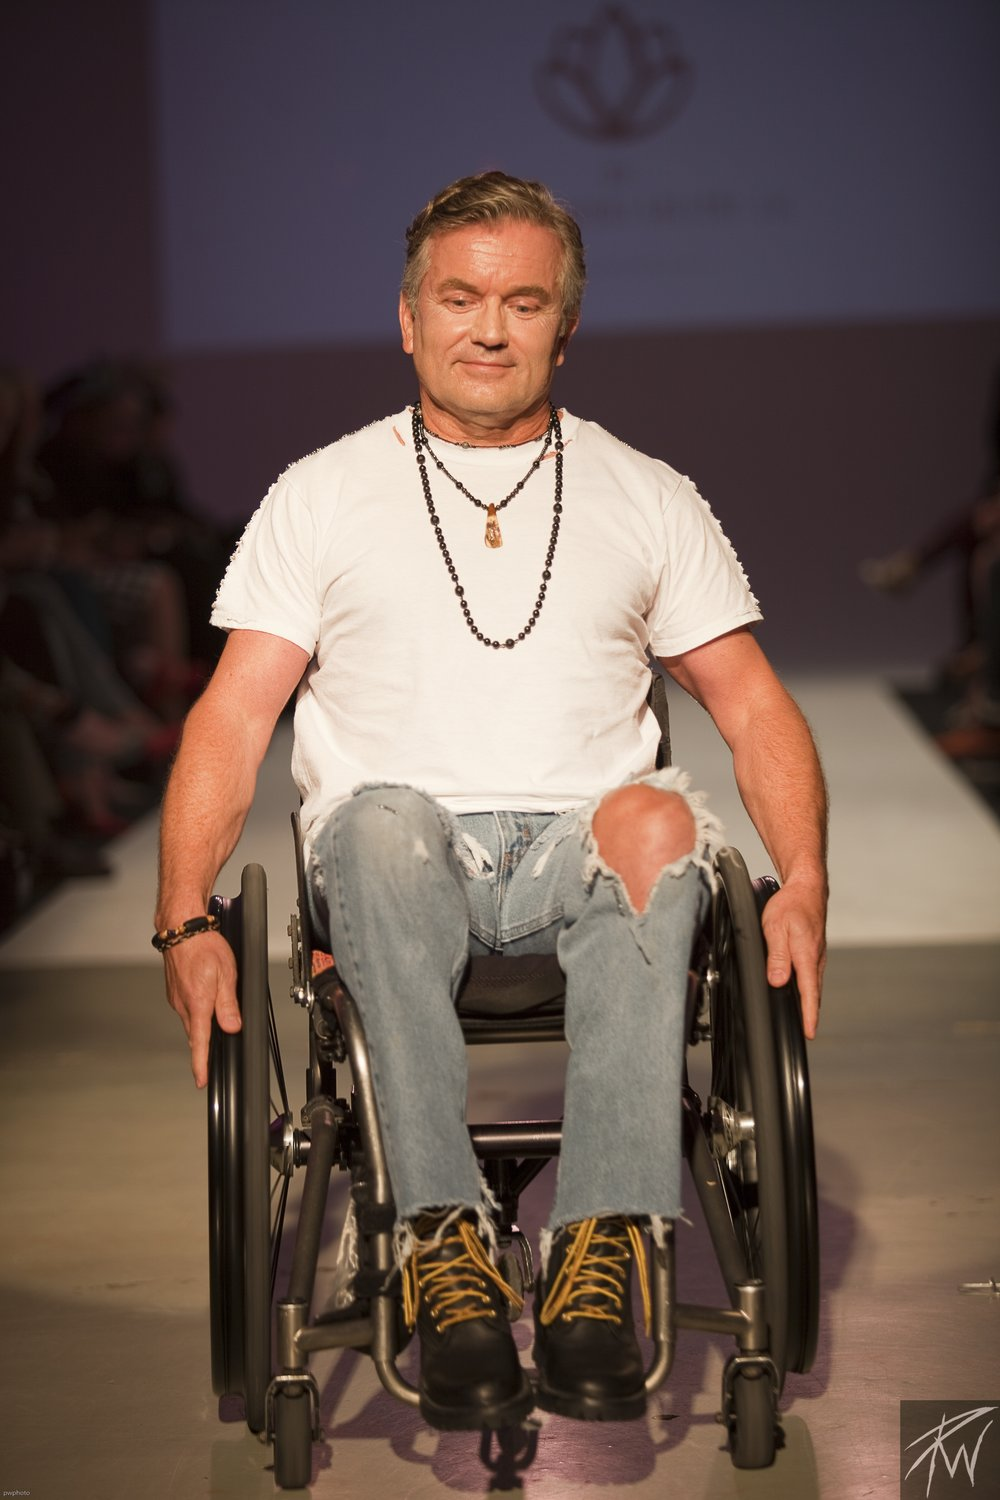 Arne Roaldsand Wearing Sue Surdi Designs Jewelry